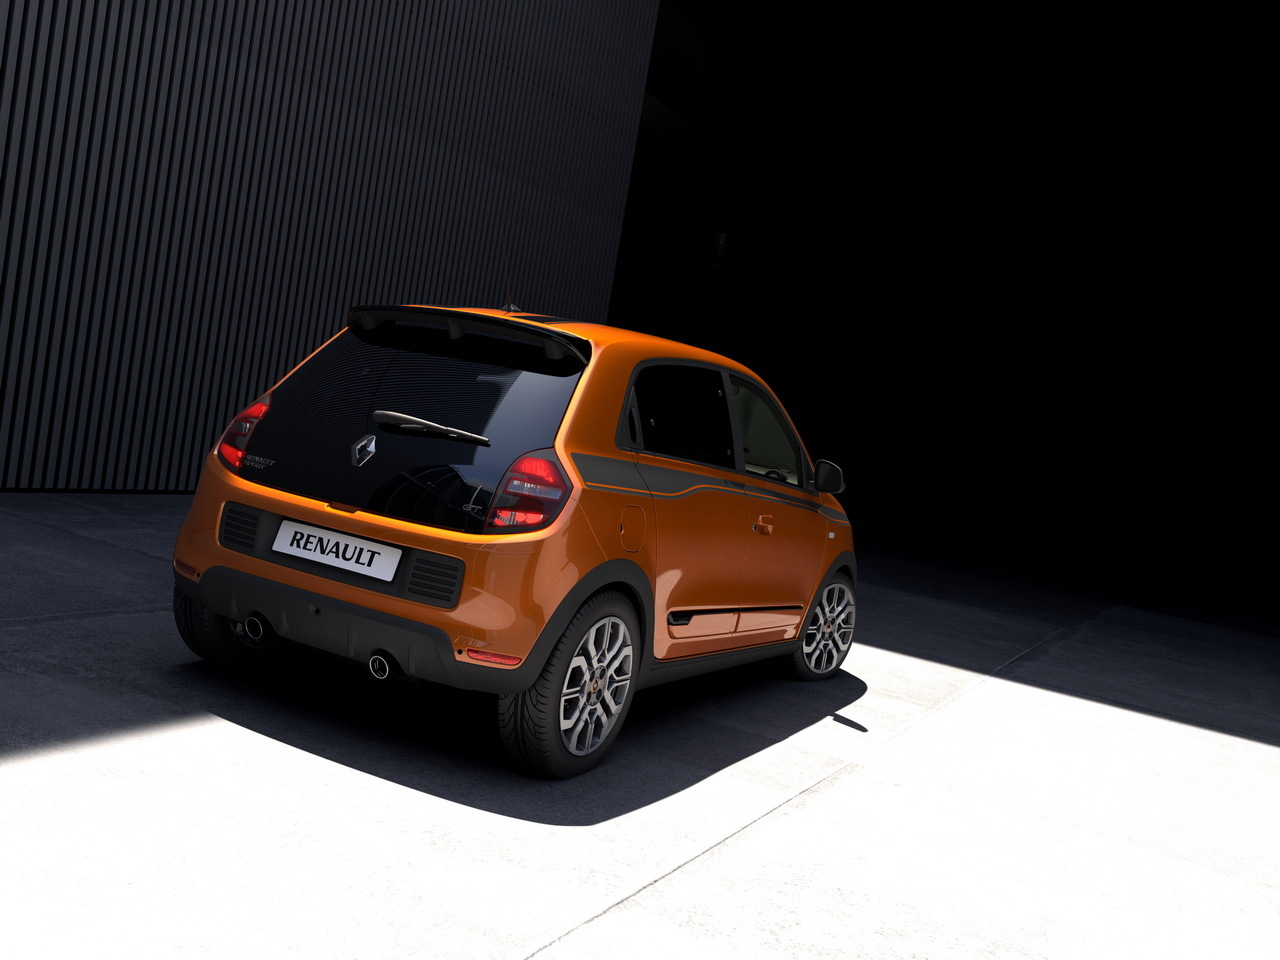 renault twingo gt 2016 les premi res photos officielles l 39 argus. Black Bedroom Furniture Sets. Home Design Ideas